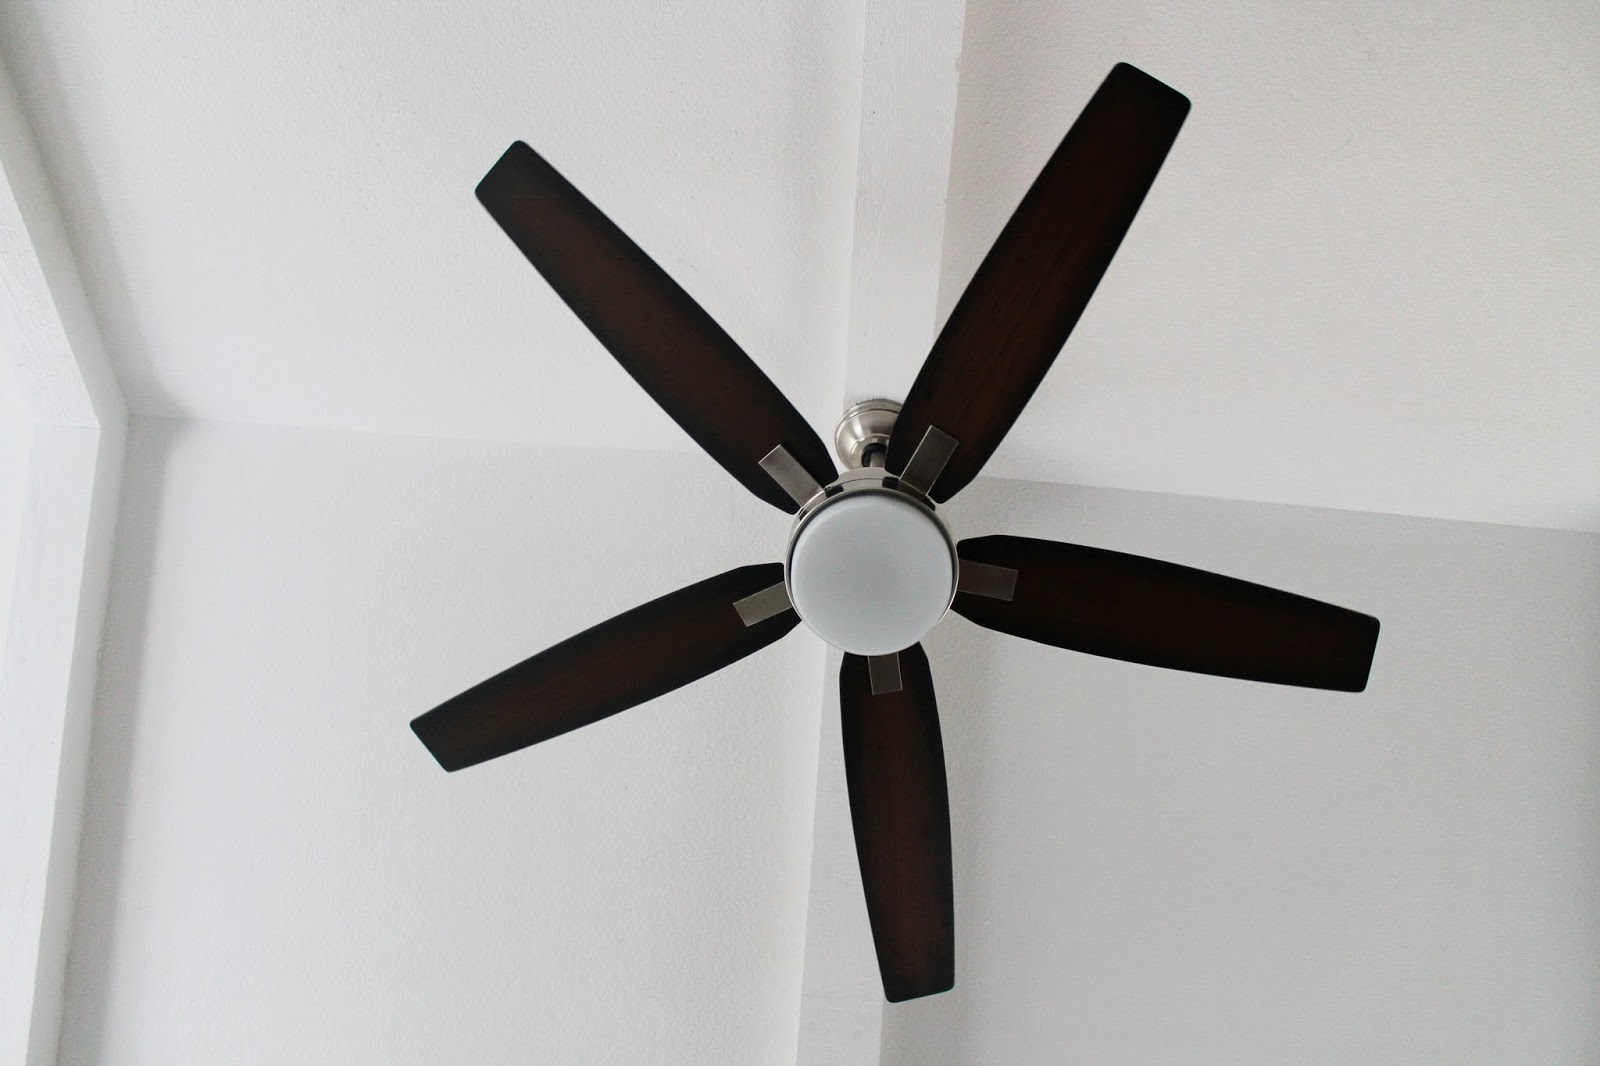 Cinsarah texas ceiling fans hunter fan co giveaway july 29 2015 aloadofball Image collections